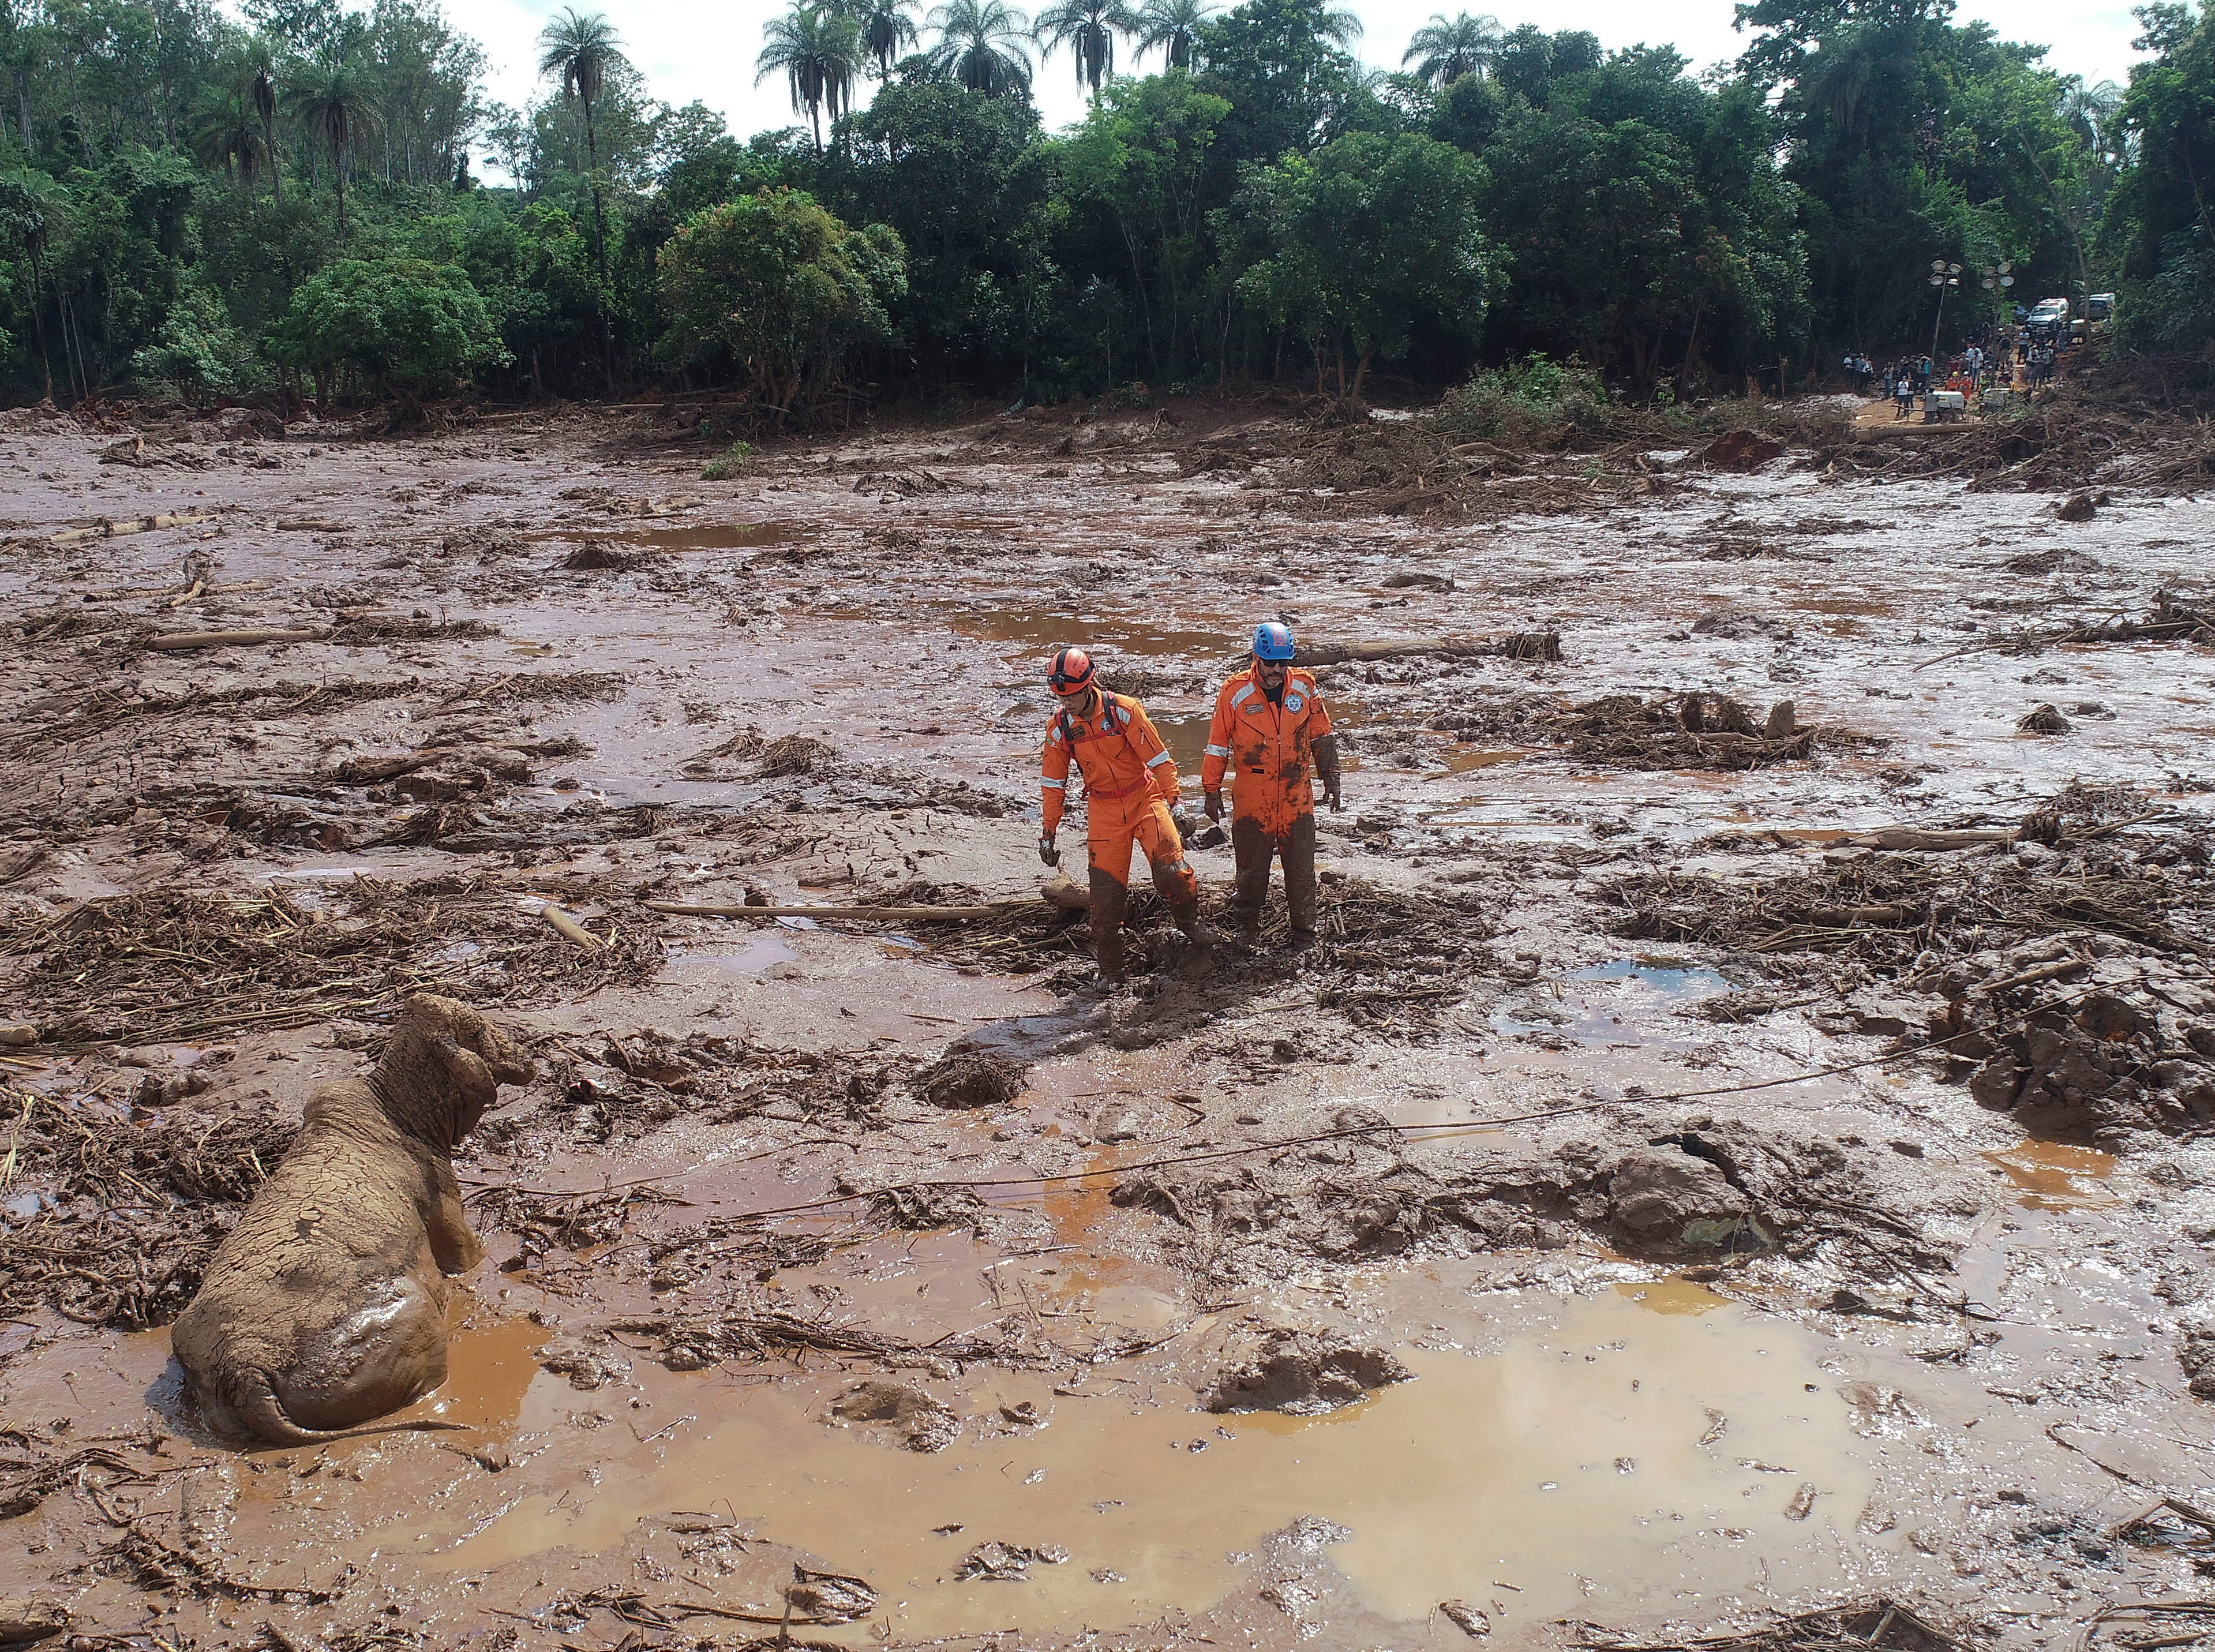 Rescue work try to reach a cow that is stuck in a field of mud, two days after a dam collapse in Brumadinho, Brazil, Sunday, Jan. 27, 2019.